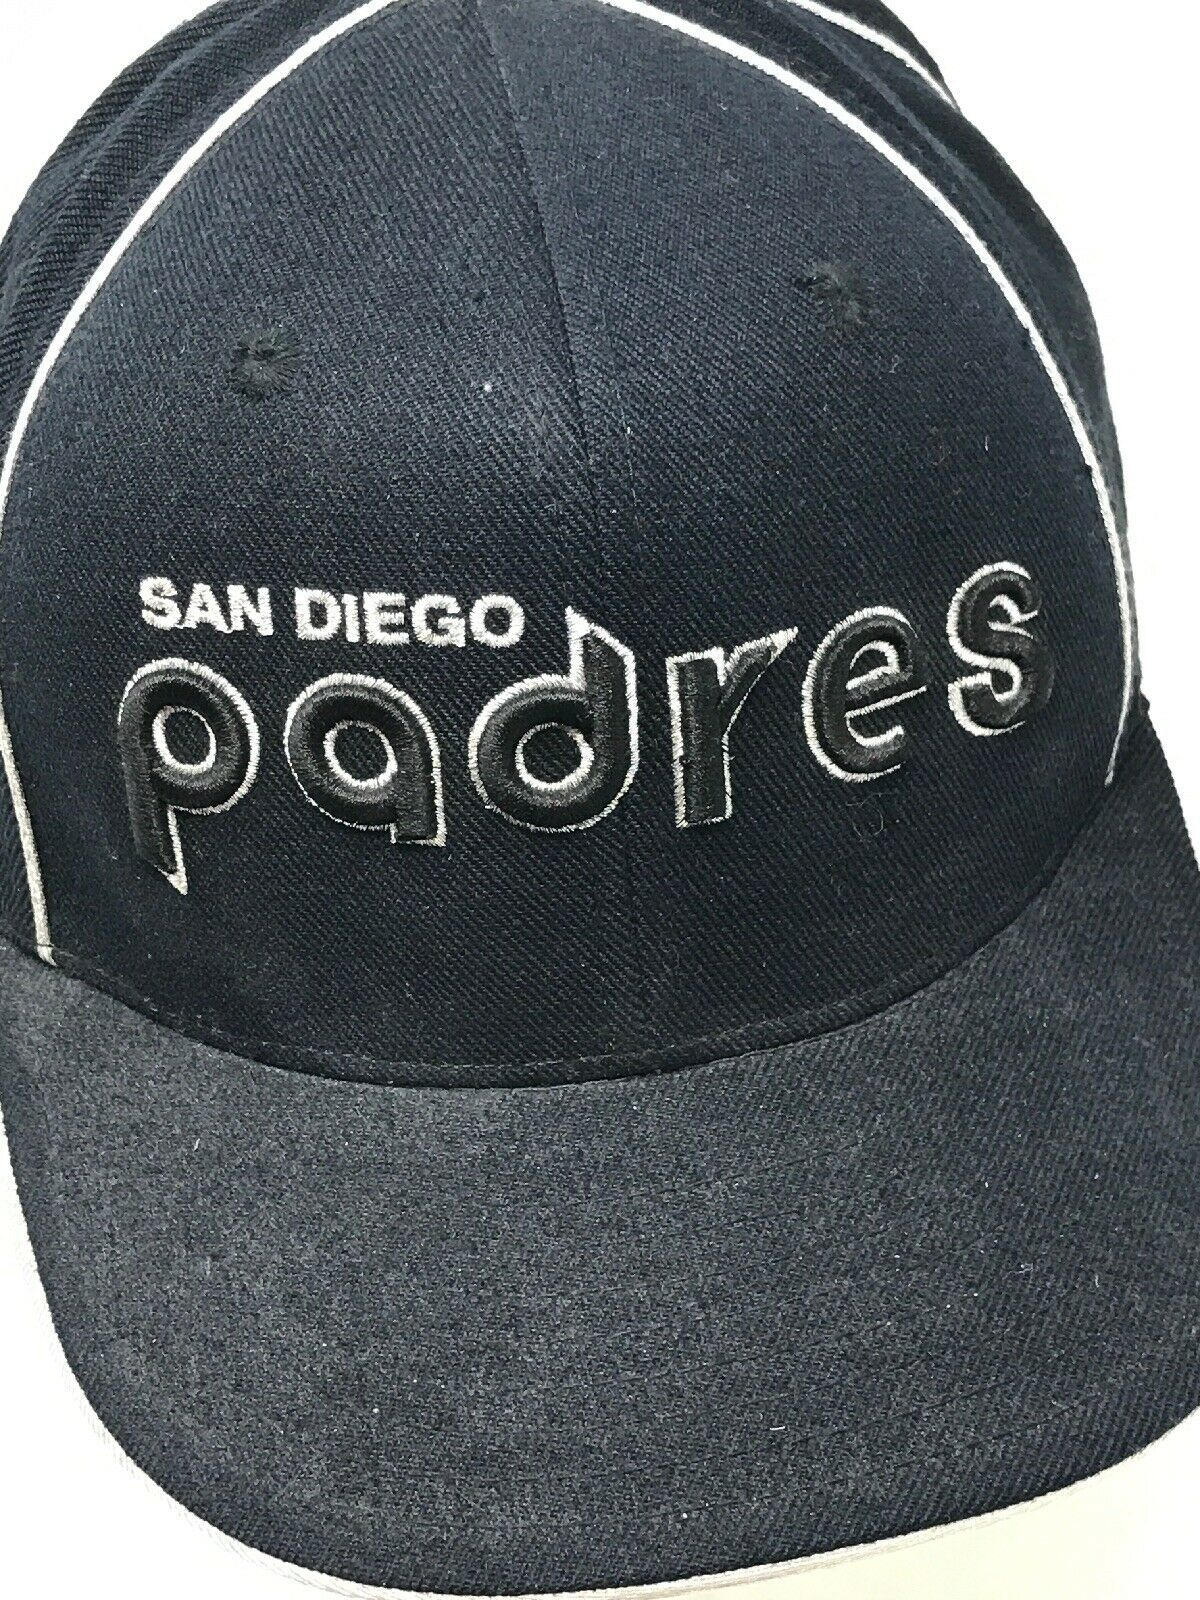 American Needle 1918 San Diego Padres Cooperstown 7 3/4 Fitted Pin Stripe Hat